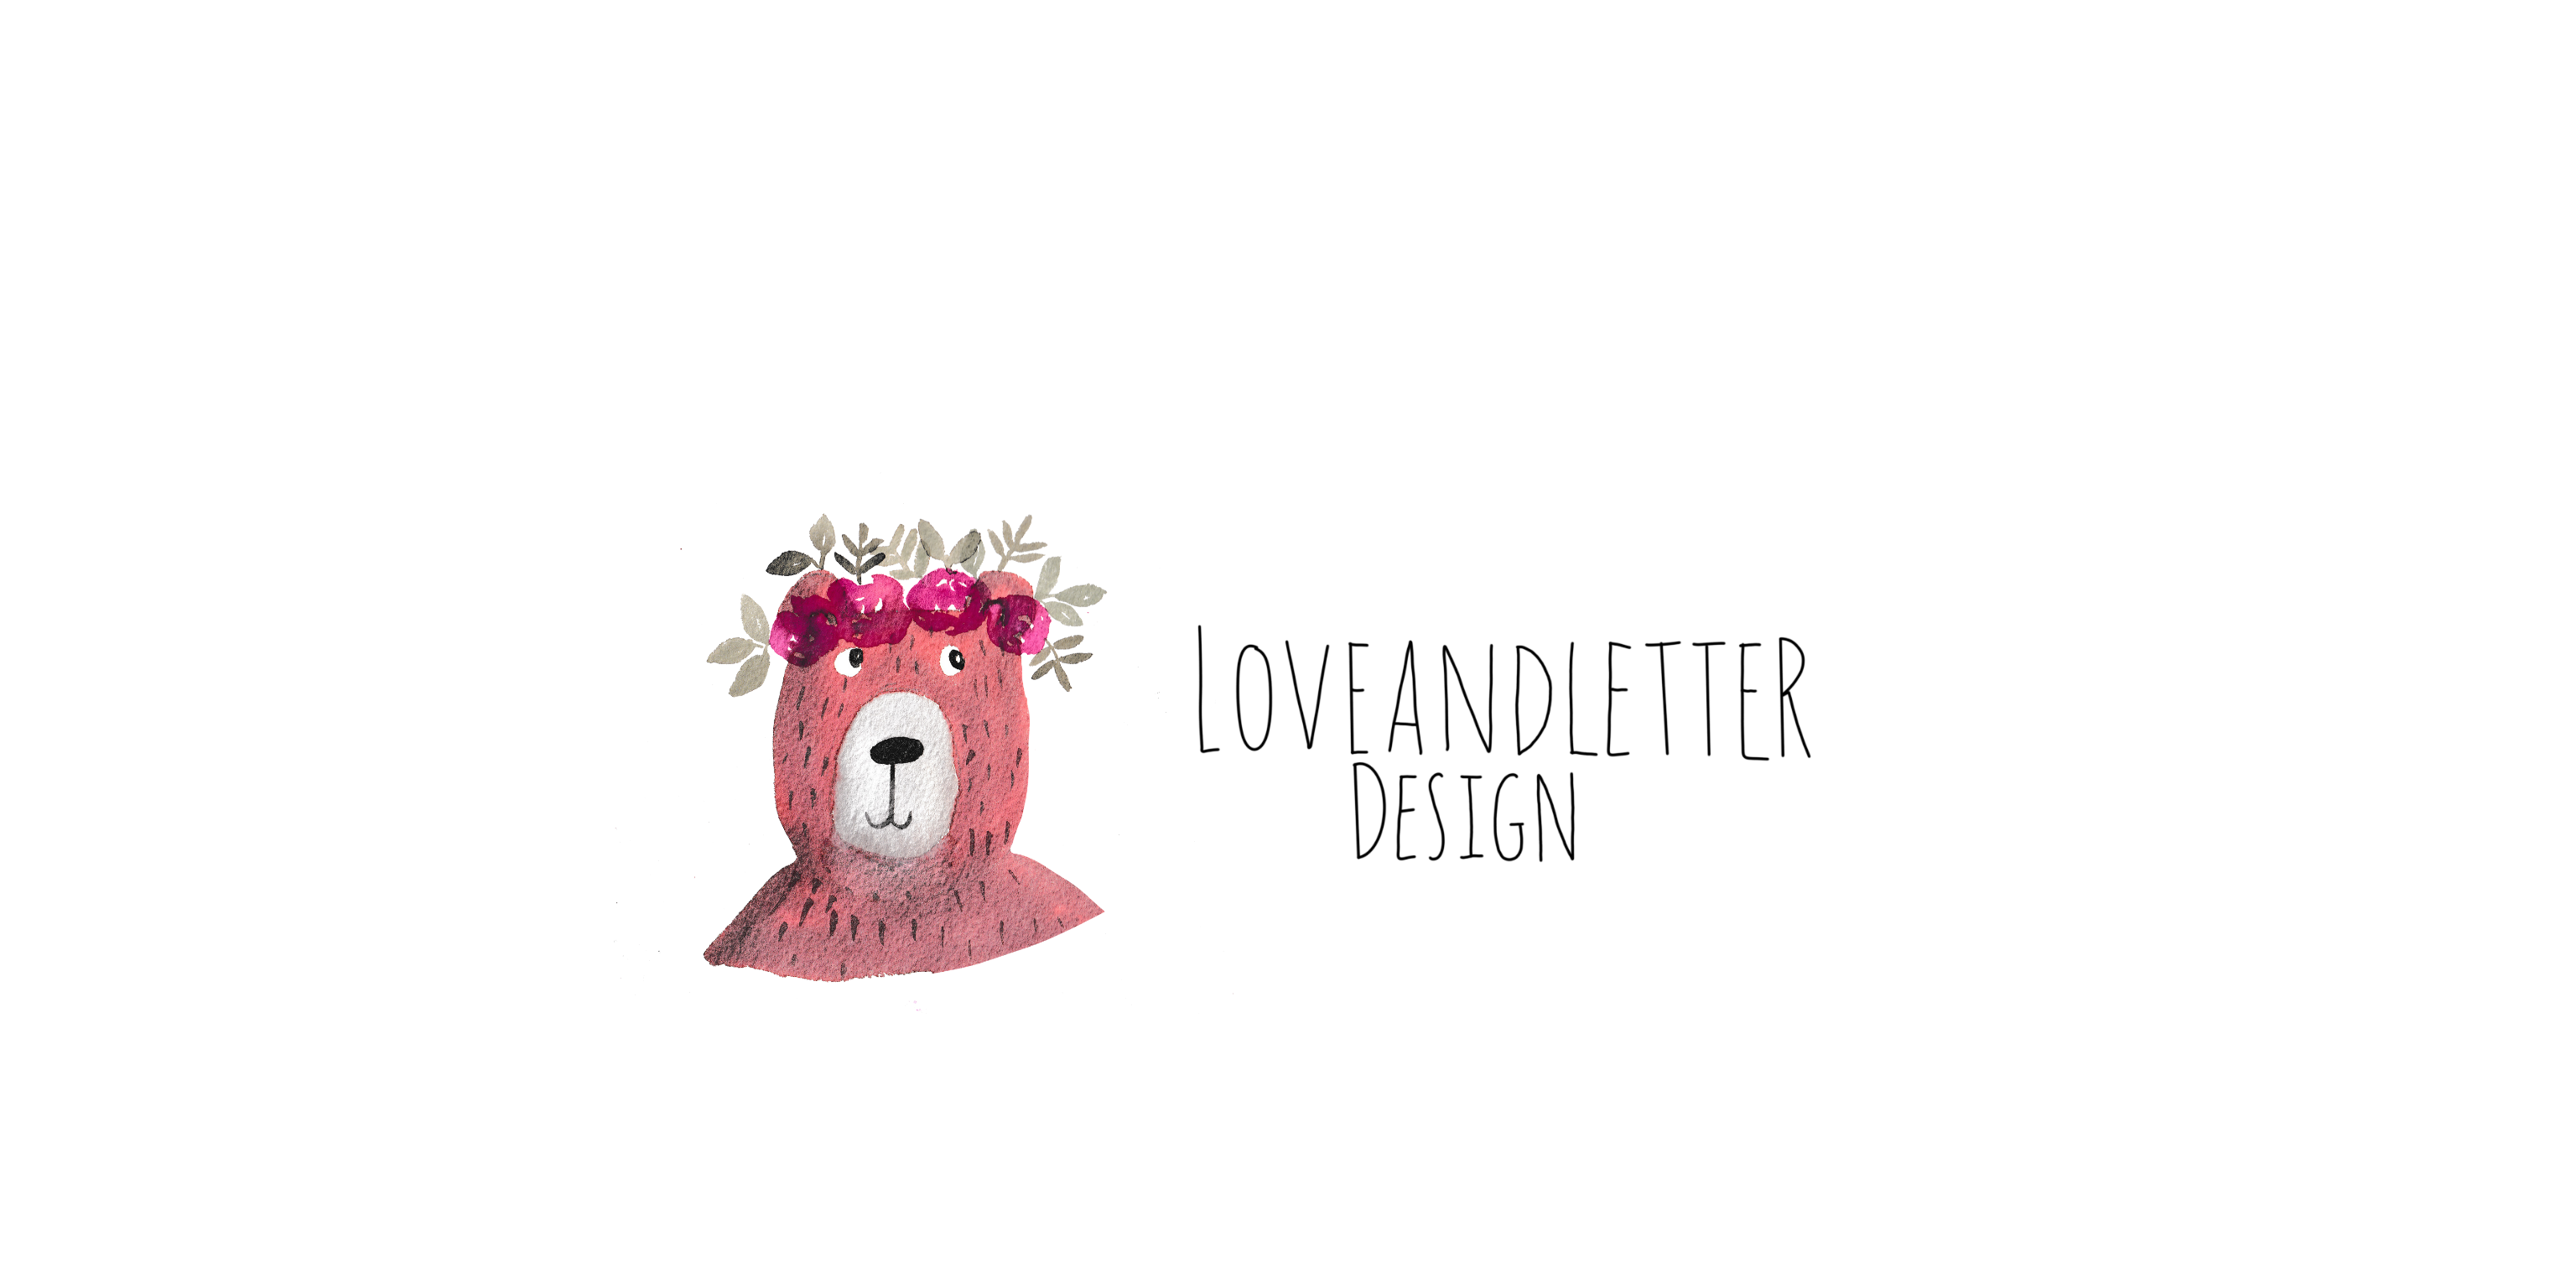 Loveandletterdesign